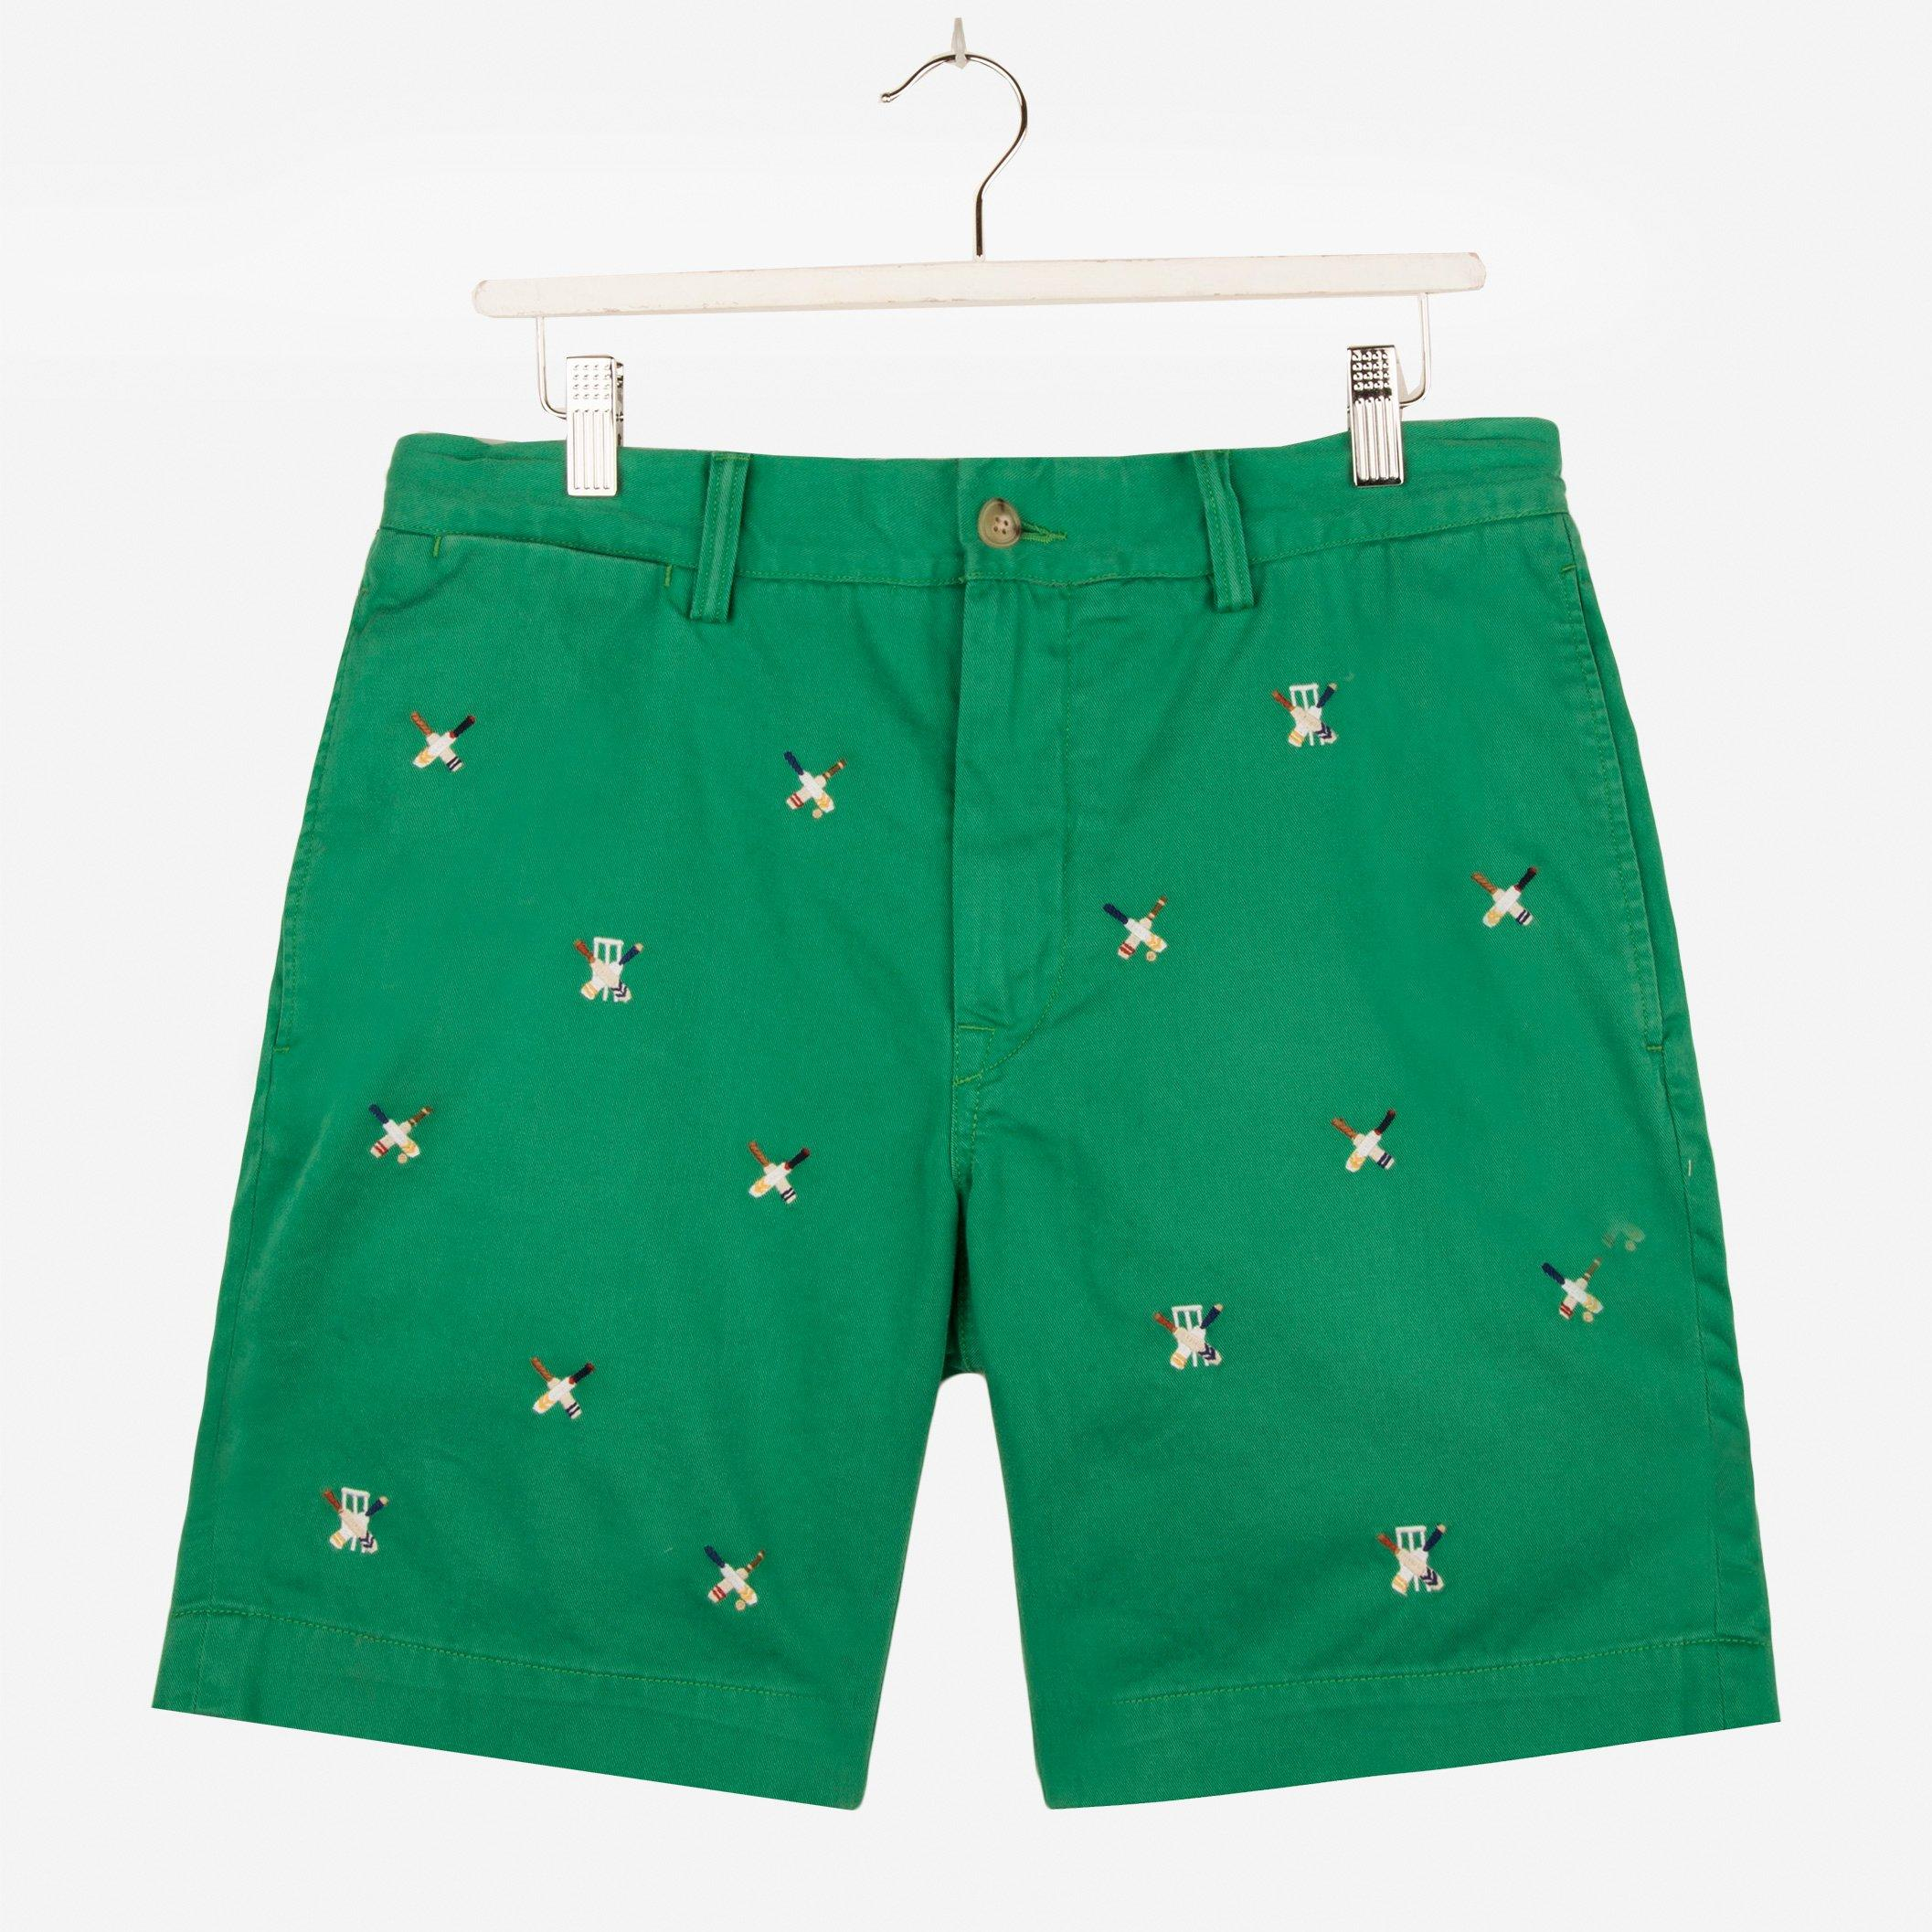 Polo Ralph Lauren Embroided Bedford Short